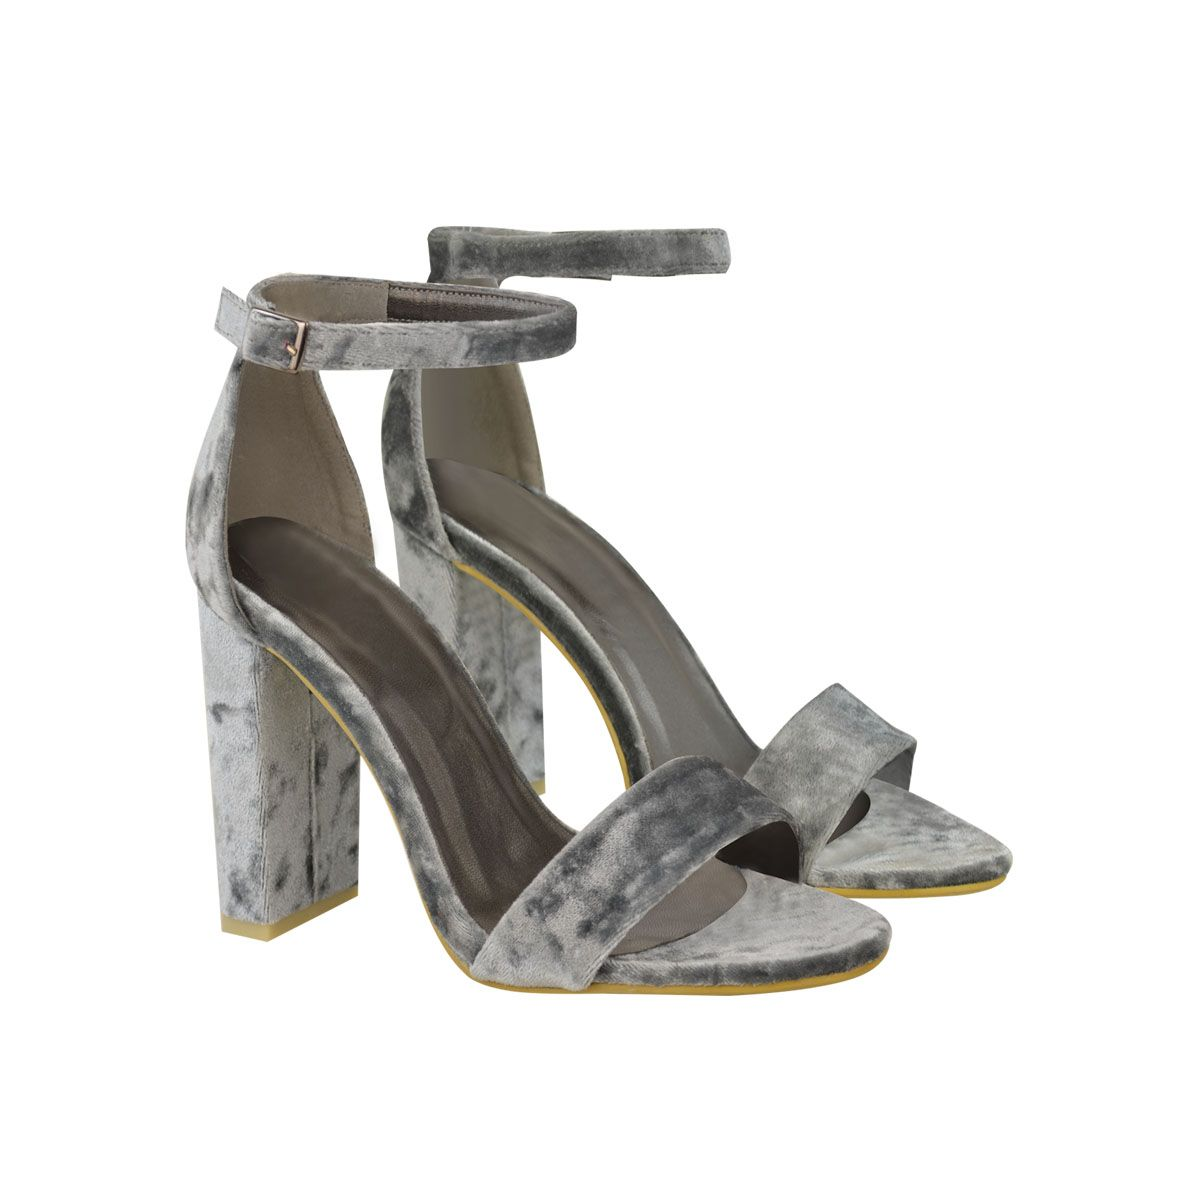 31c23c996a74 Grey Velvet Block High Heel Barely There Strappy Sandals - Yonce